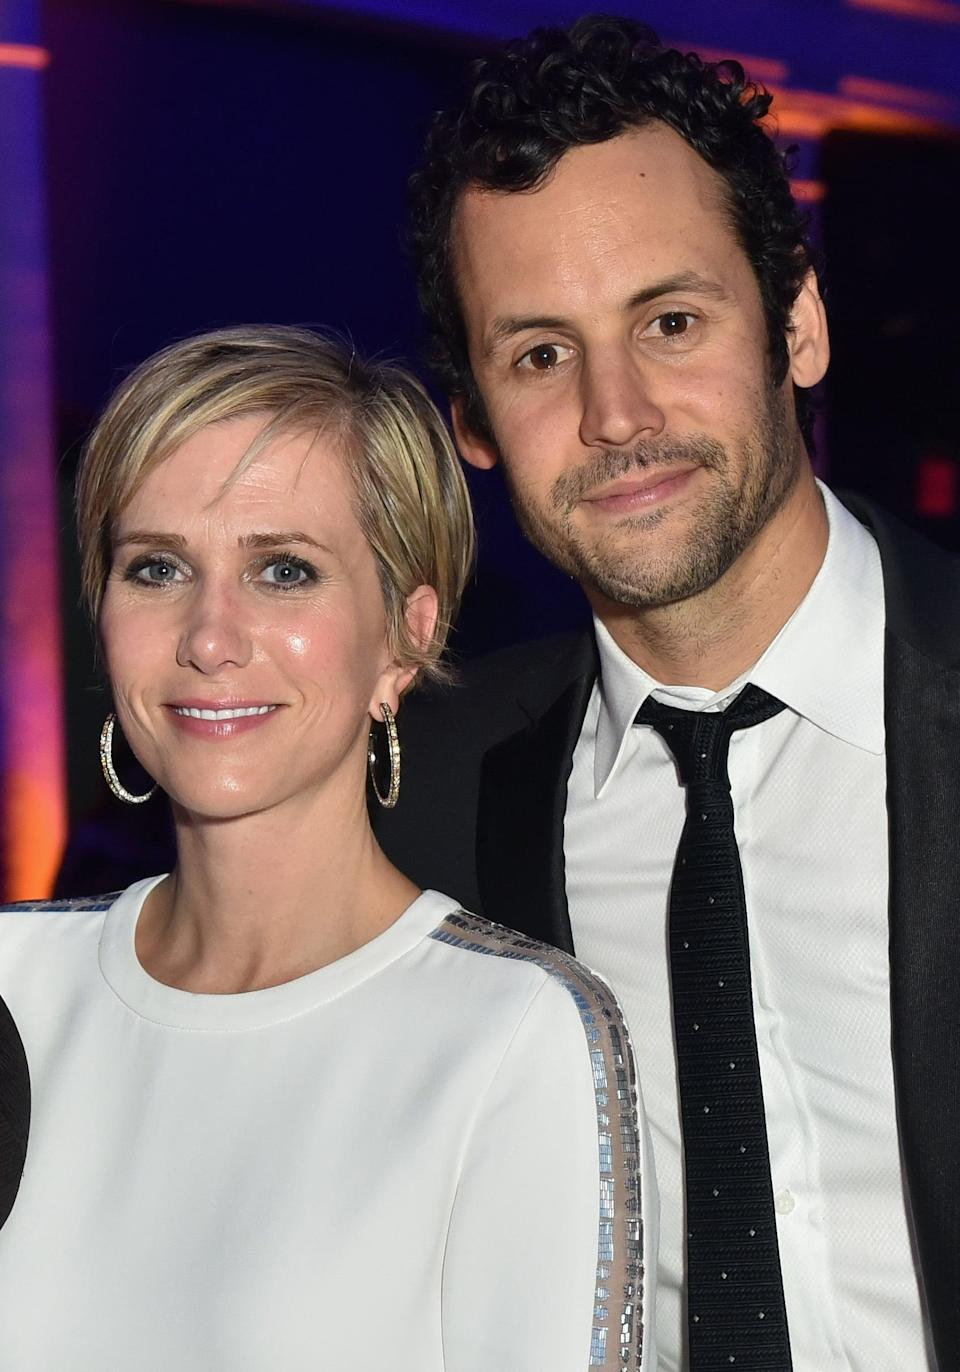 """<p>After <a href=""""https://www.popsugar.com/celebrity/kristen-wiig-fiancé-avi-rothman-welcome-twins-47557355"""" class=""""link rapid-noclick-resp"""" rel=""""nofollow noopener"""" target=""""_blank"""" data-ylk=""""slk:welcoming twins in 2020"""">welcoming twins in 2020</a>, Kristen confirmed during a February 2021 appearance on <strong>The Howard Stern Show</strong> that <a href=""""https://www.usmagazine.com/celebrity-news/news/kristen-wiig-confirms-she-married-avi-rothman-calls-him-husband/"""" class=""""link rapid-noclick-resp"""" rel=""""nofollow noopener"""" target=""""_blank"""" data-ylk=""""slk:she and her longtime love had secretly tied the knot"""">she and her longtime love had secretly tied the knot</a>. """"Besides the fact that we are where we are - it's hard to not feel so much of the sh*t and struggle that's going on,"""" Kristen said. """"In my home, I'm very lucky about having these two babies and my husband. They make it all better. It's changed my life.""""</p>"""